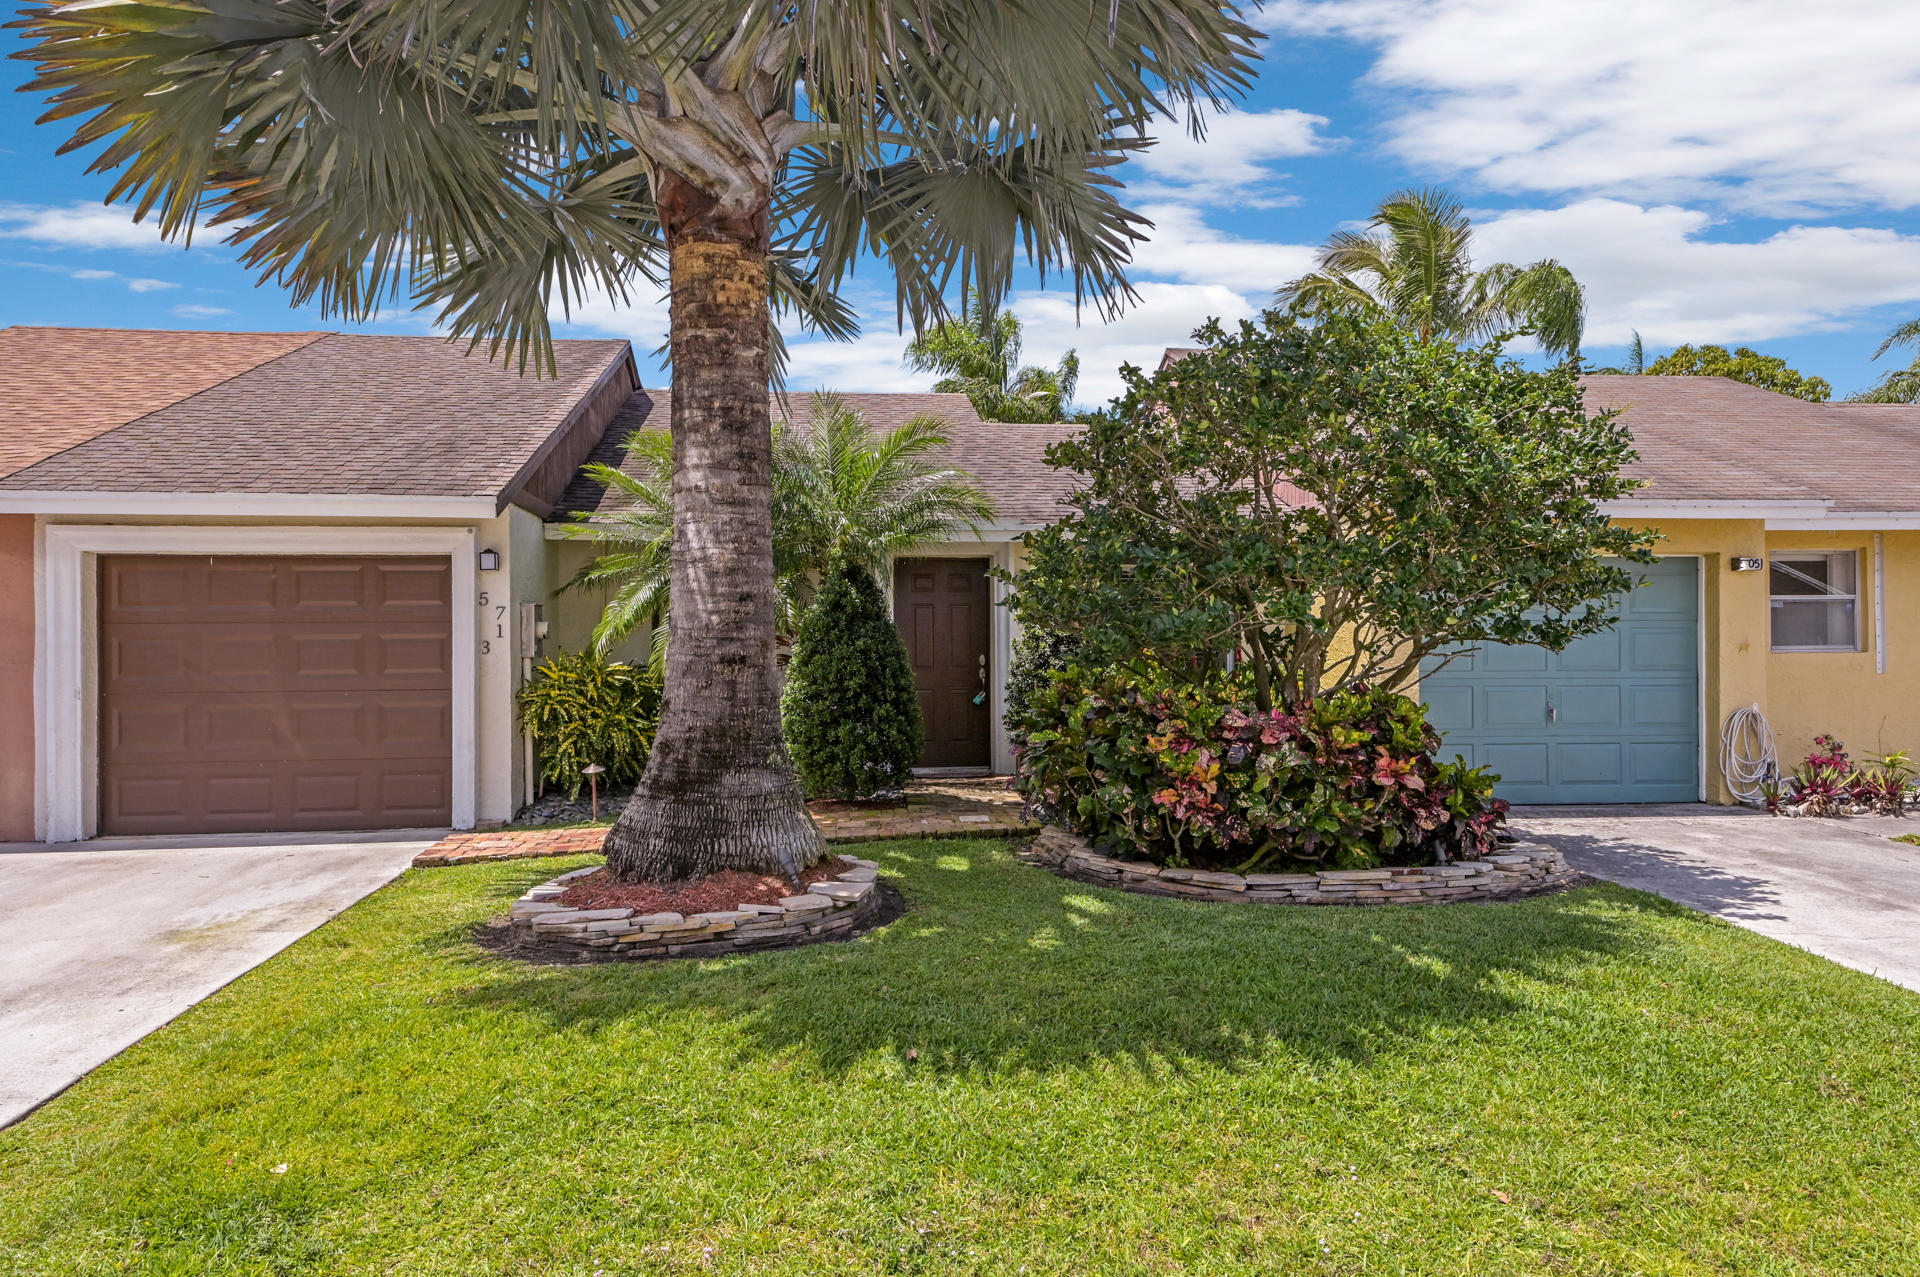 Home for sale in Lee's Crossing Lake Worth Florida